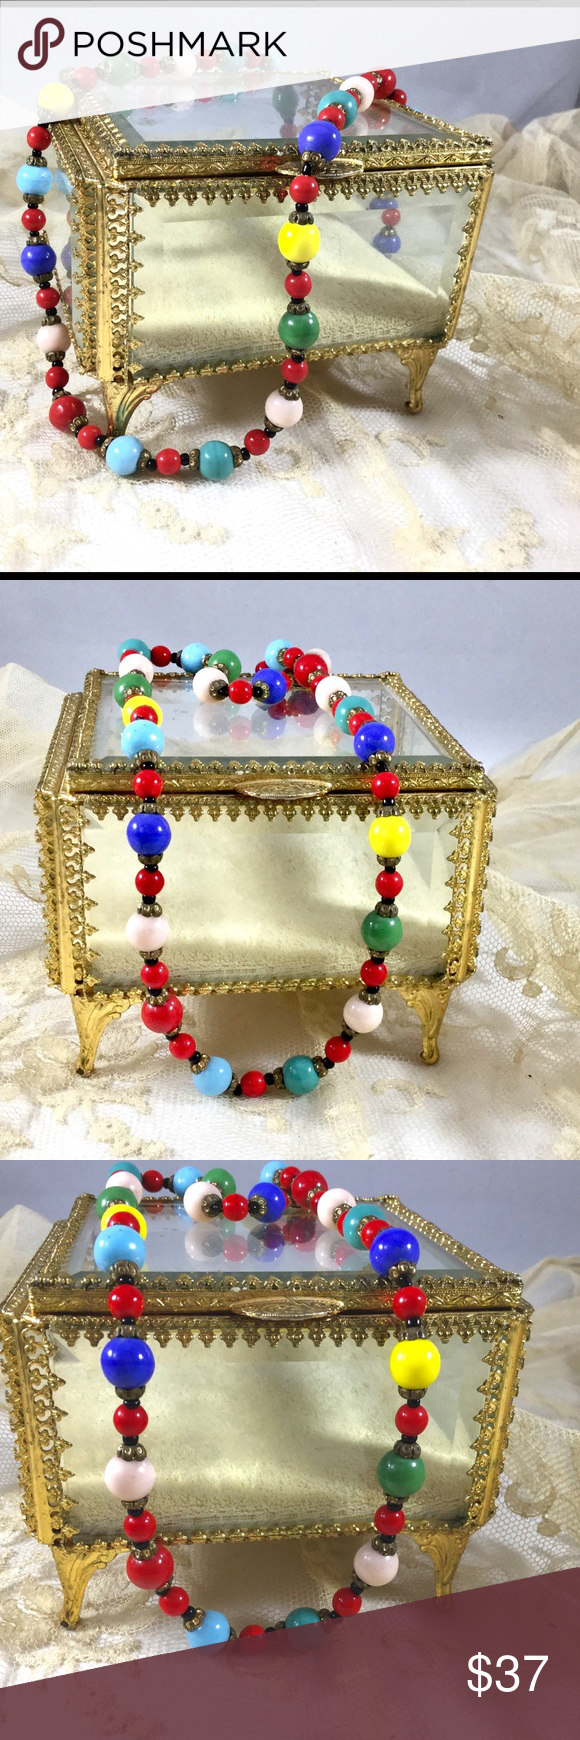 Vintage Art Deco 1930s Glass Bead Necklace Stunning original Art Deco multicolor glass beads with bronze filigree bead caps.  Excellent vintage condition. Vintage Jewelry Necklaces